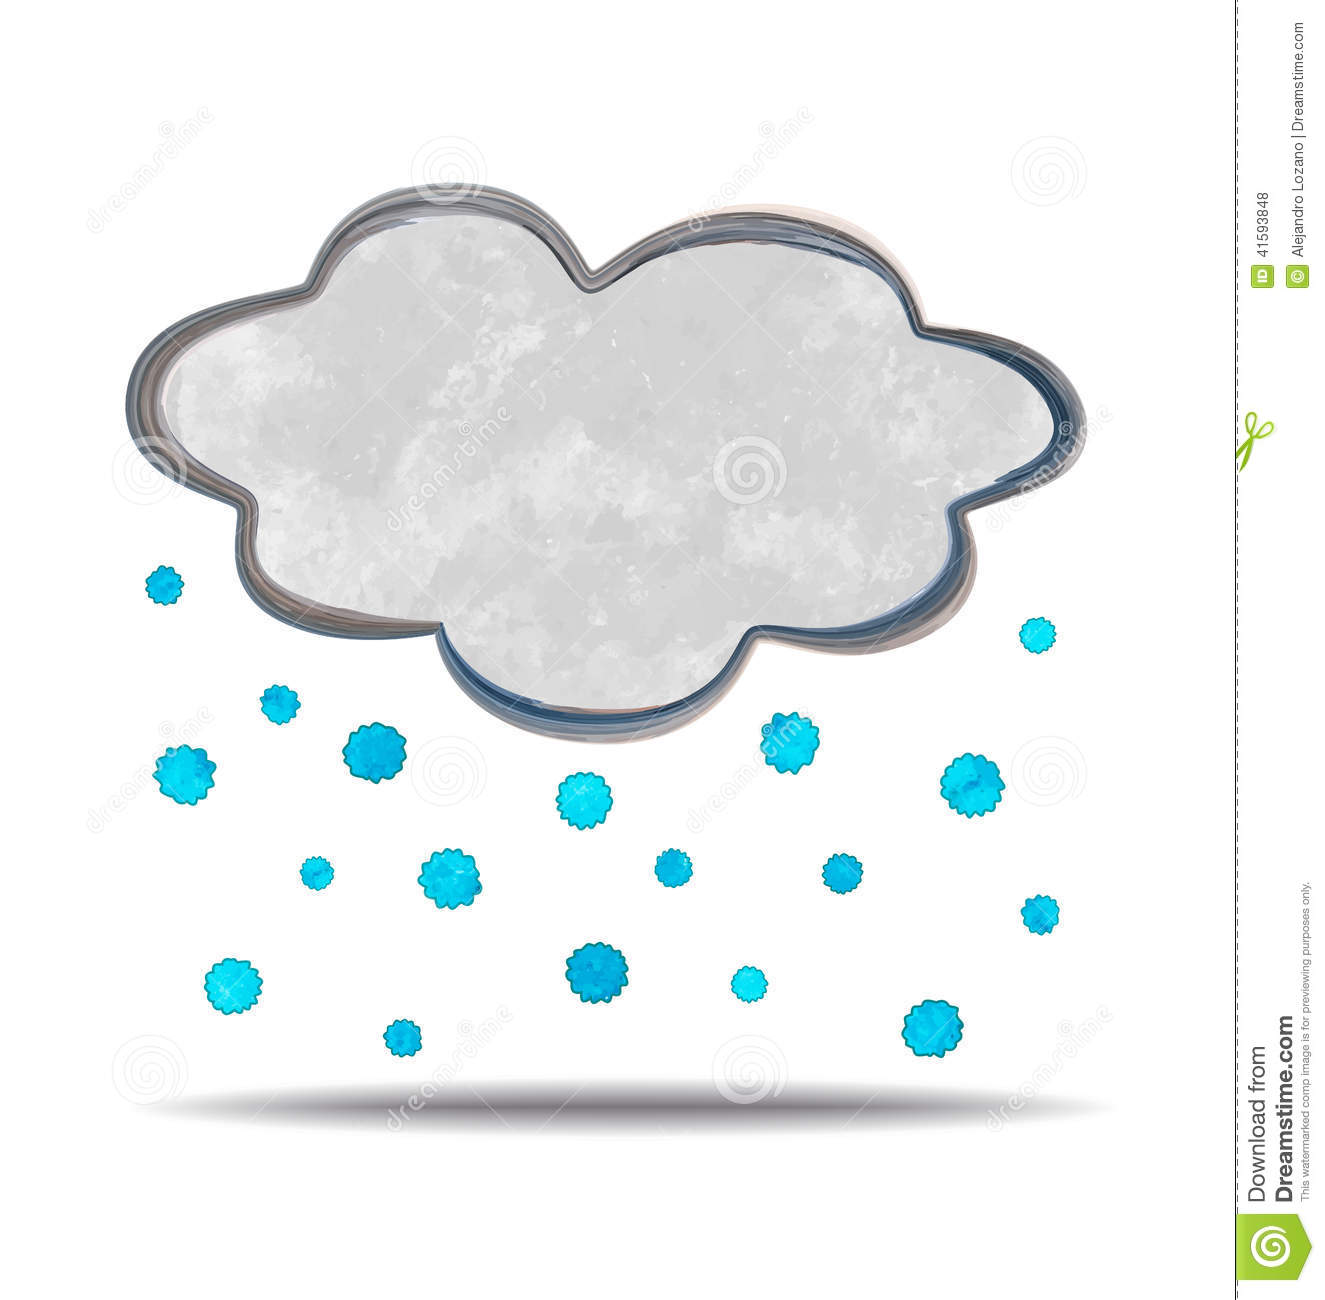 clima nuvola e grandine illustrazione vettoriale storm cloud with lightning clipart storm cloud pictures clipart